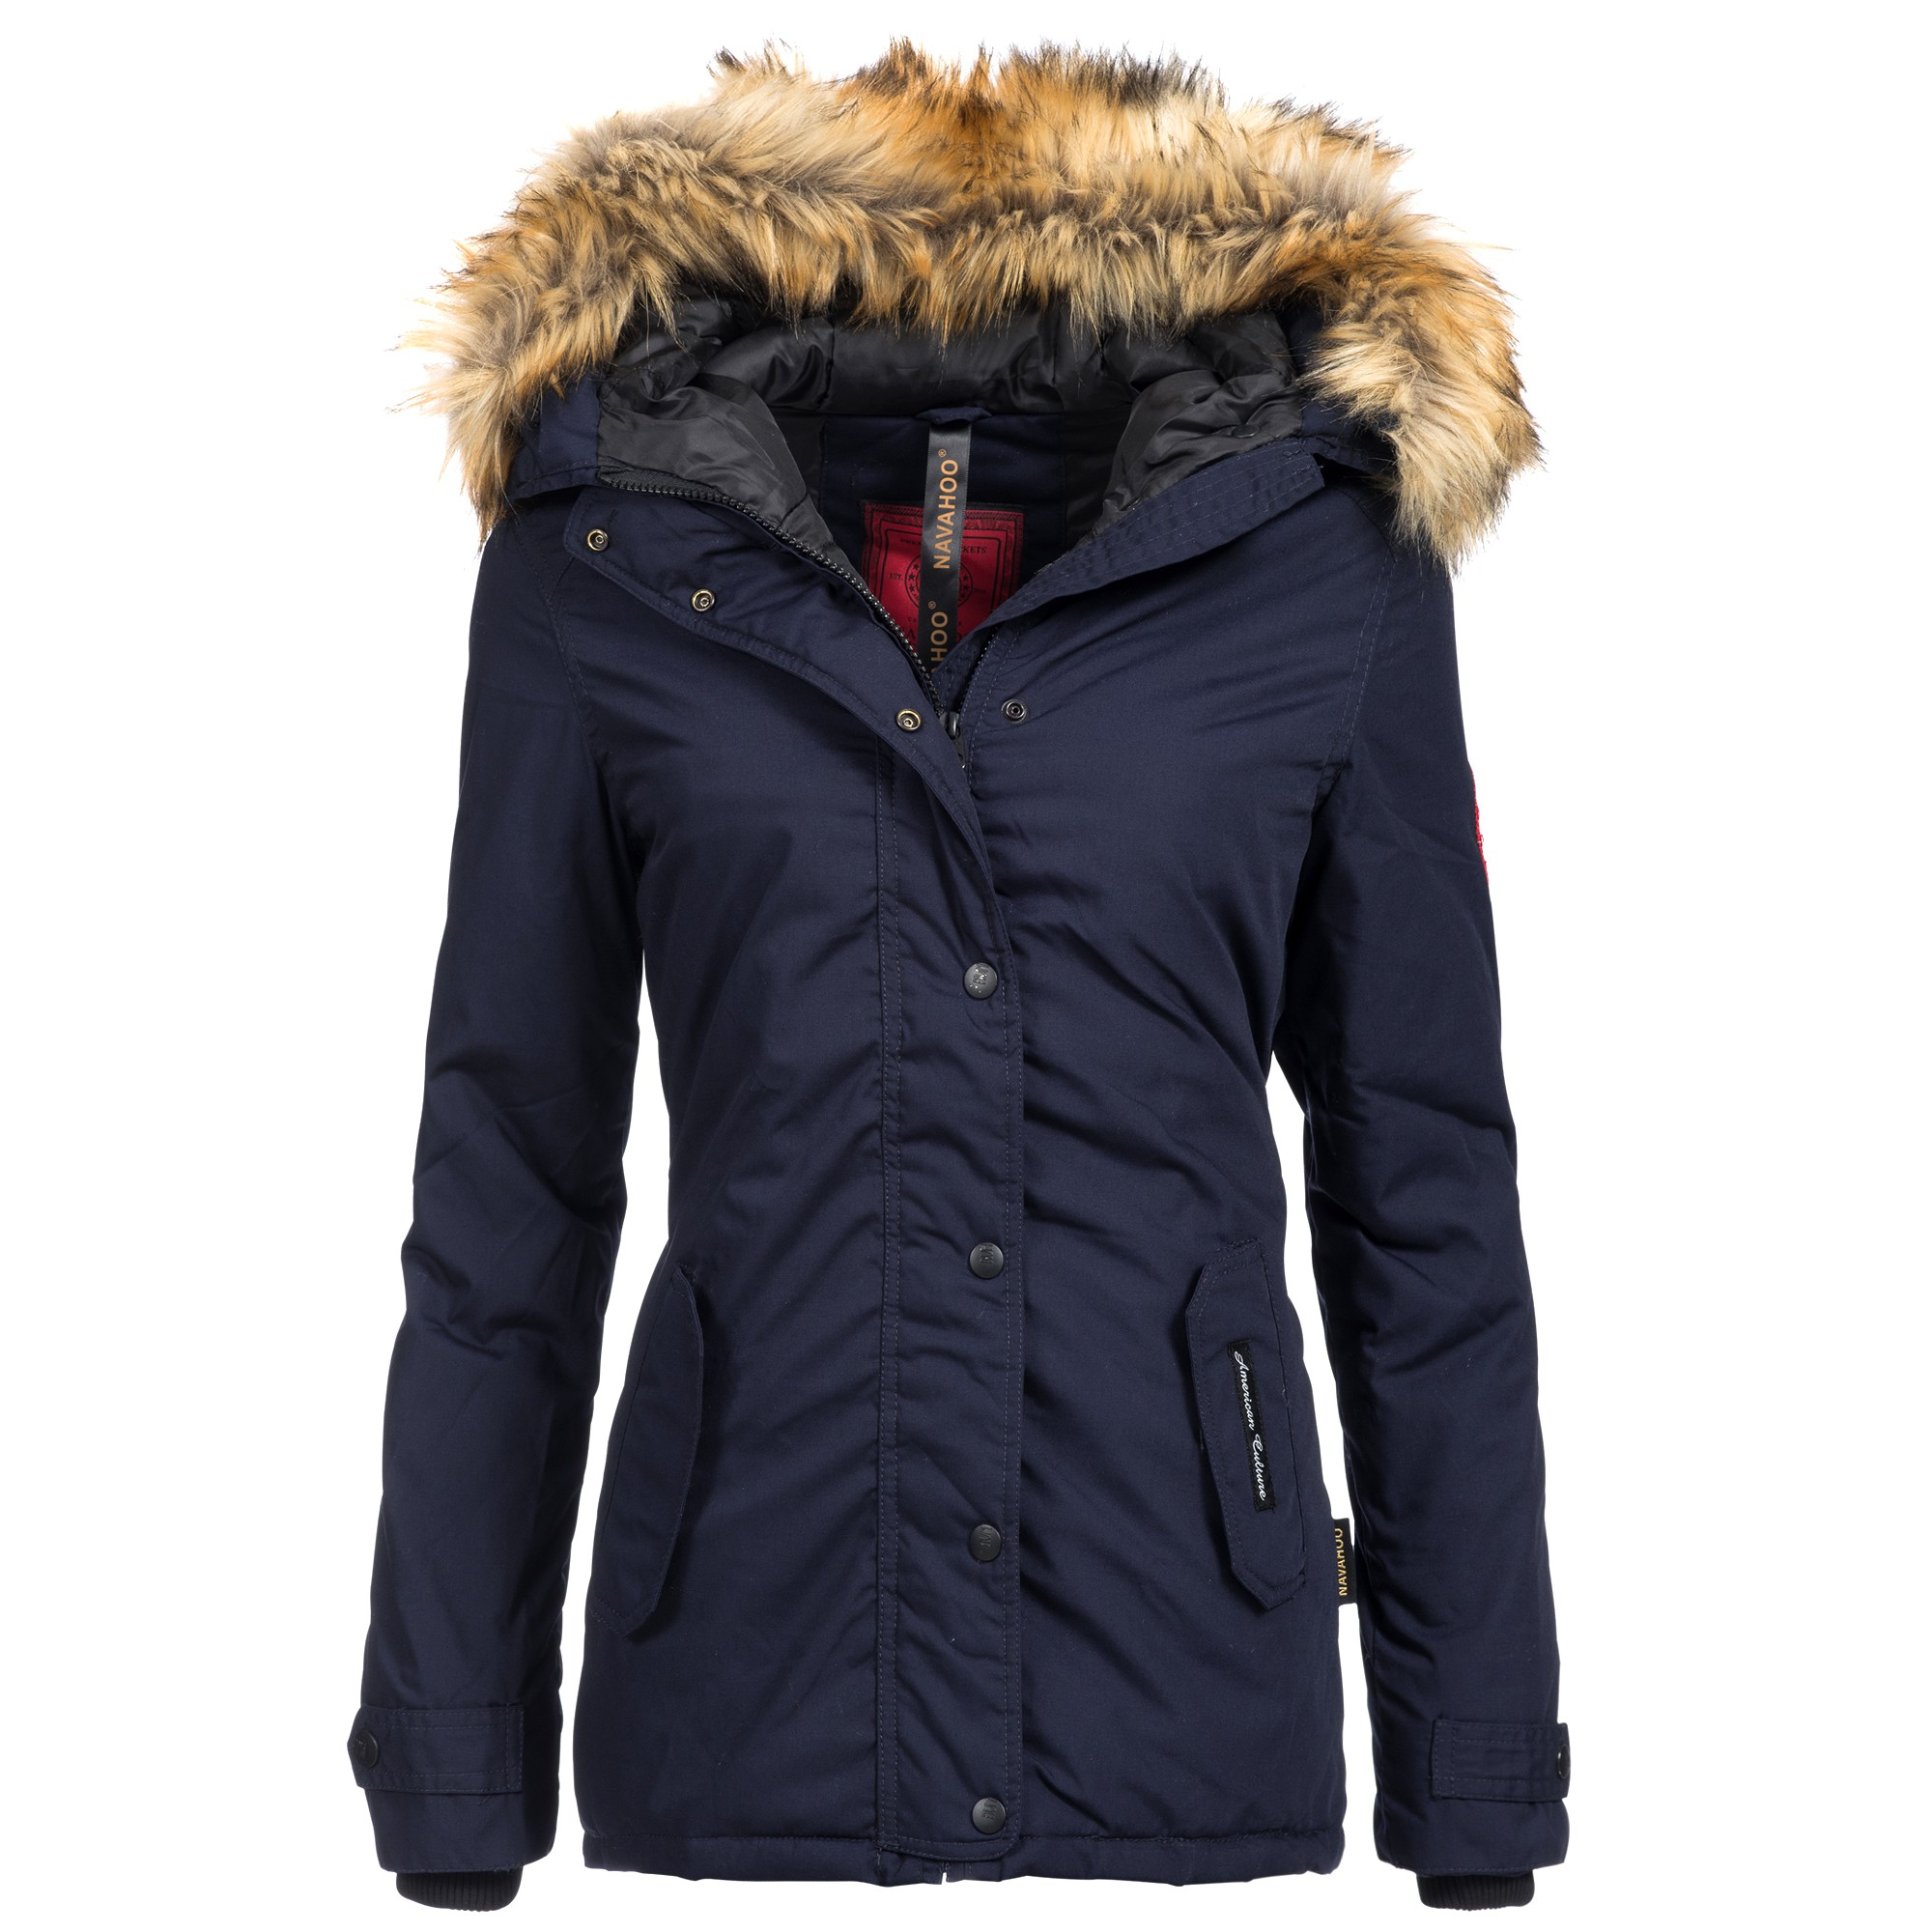 navahoo laura damen jacke parka mantel winterjacke kapuze super warm xs xxl ebay. Black Bedroom Furniture Sets. Home Design Ideas